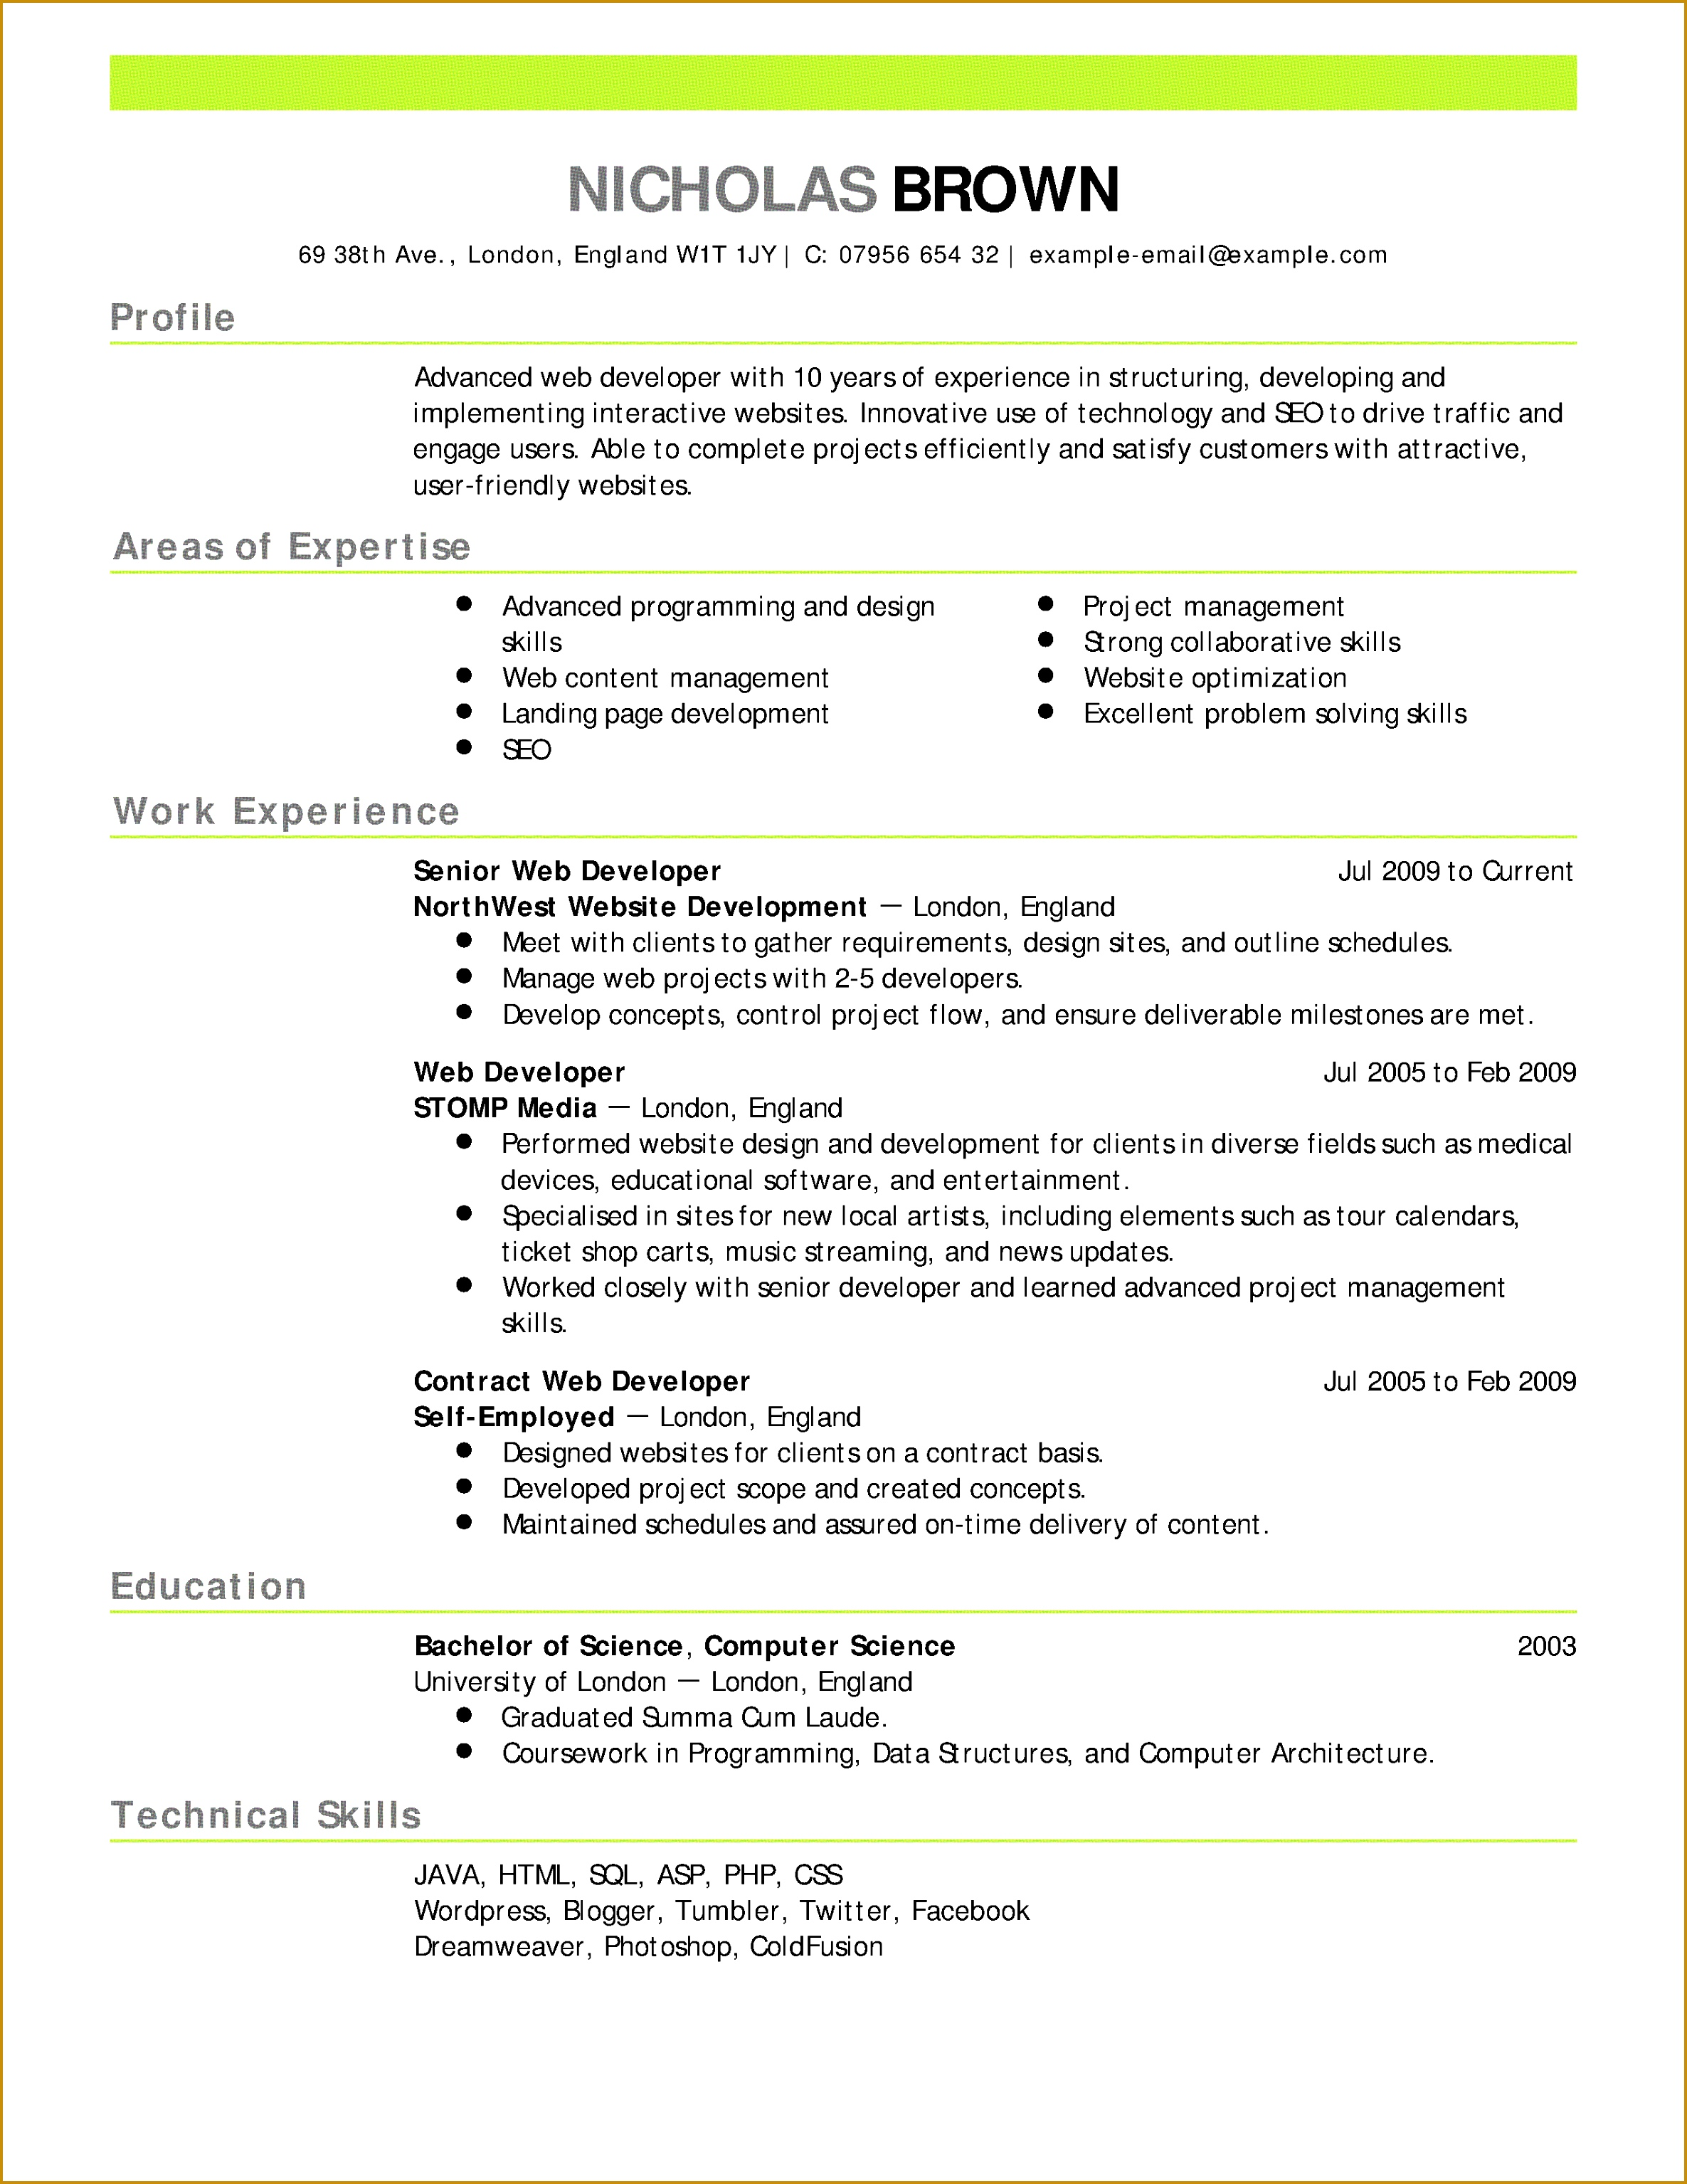 Date Birth format In Resume Unique Professional Job Resume Template Od Specialist Cover Letter Lead 30692371